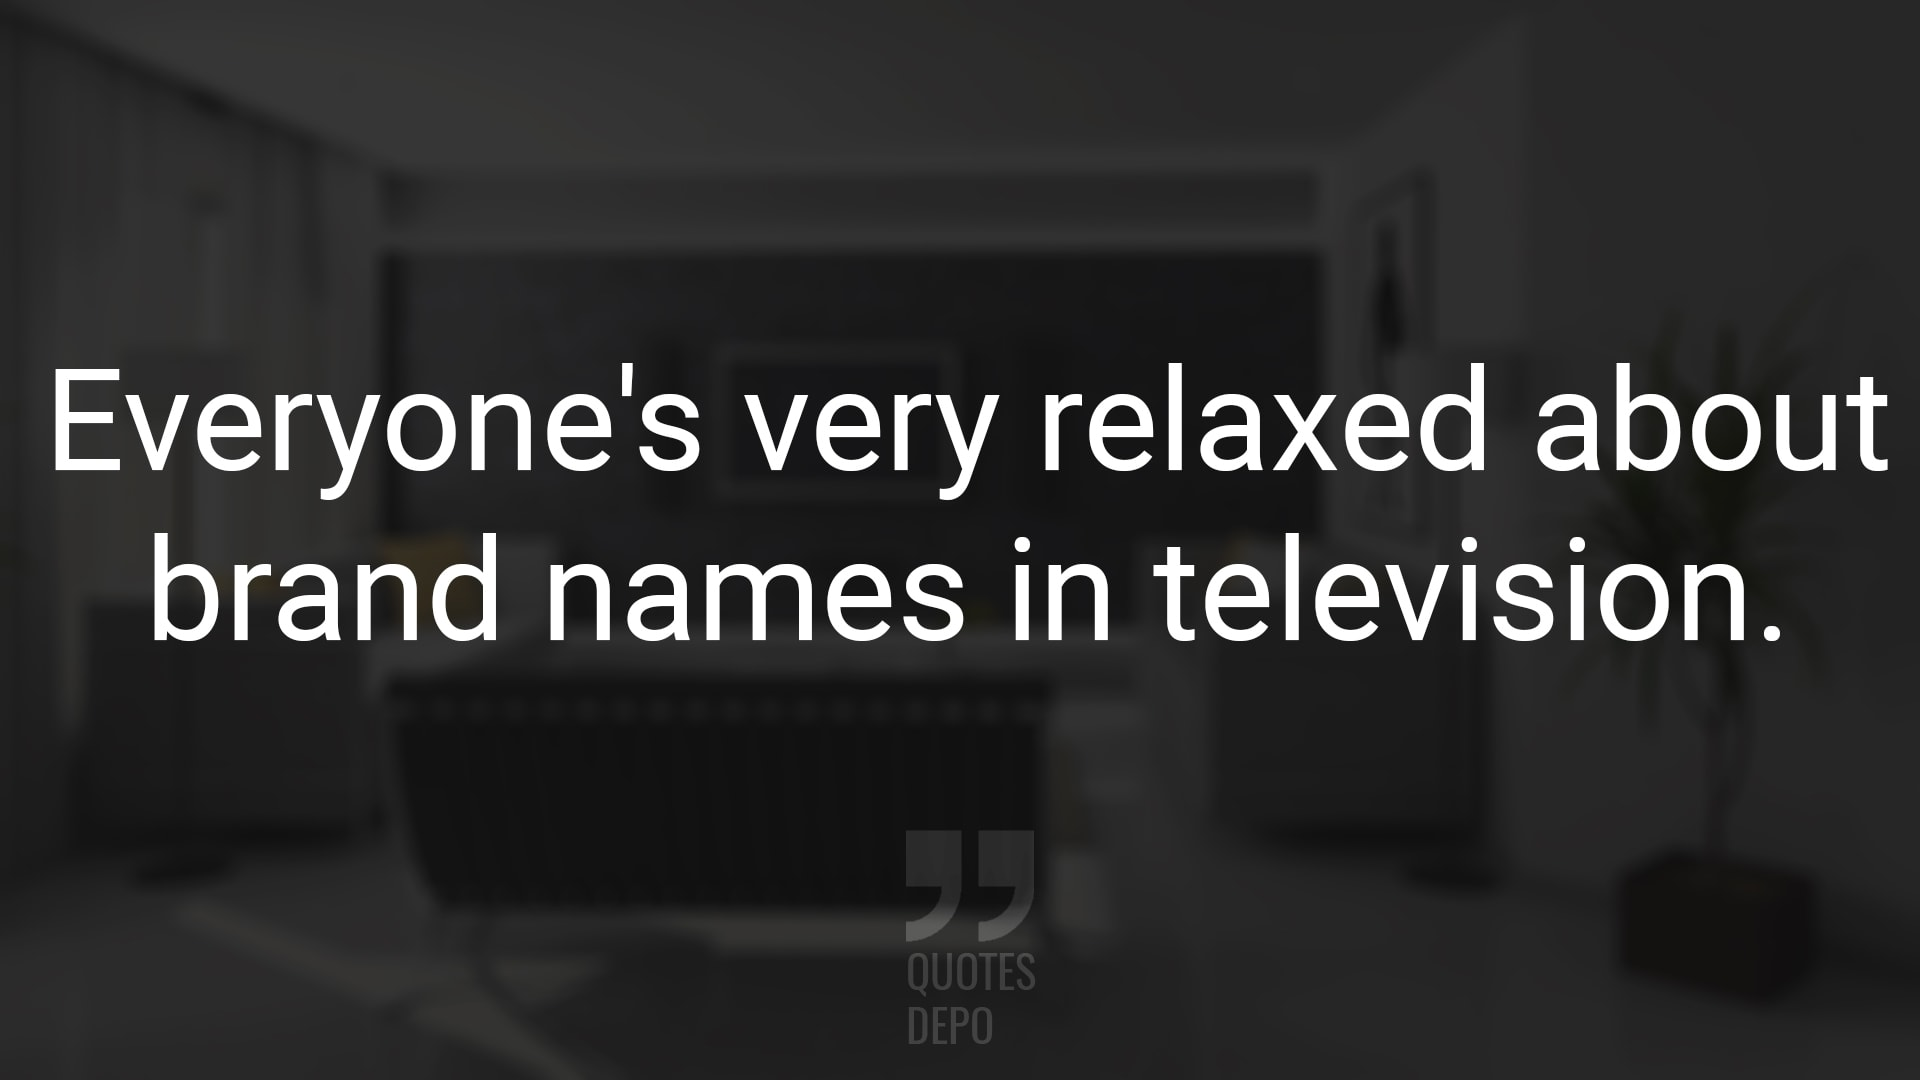 Everyone's Very Relaxed About Brand Names in Television